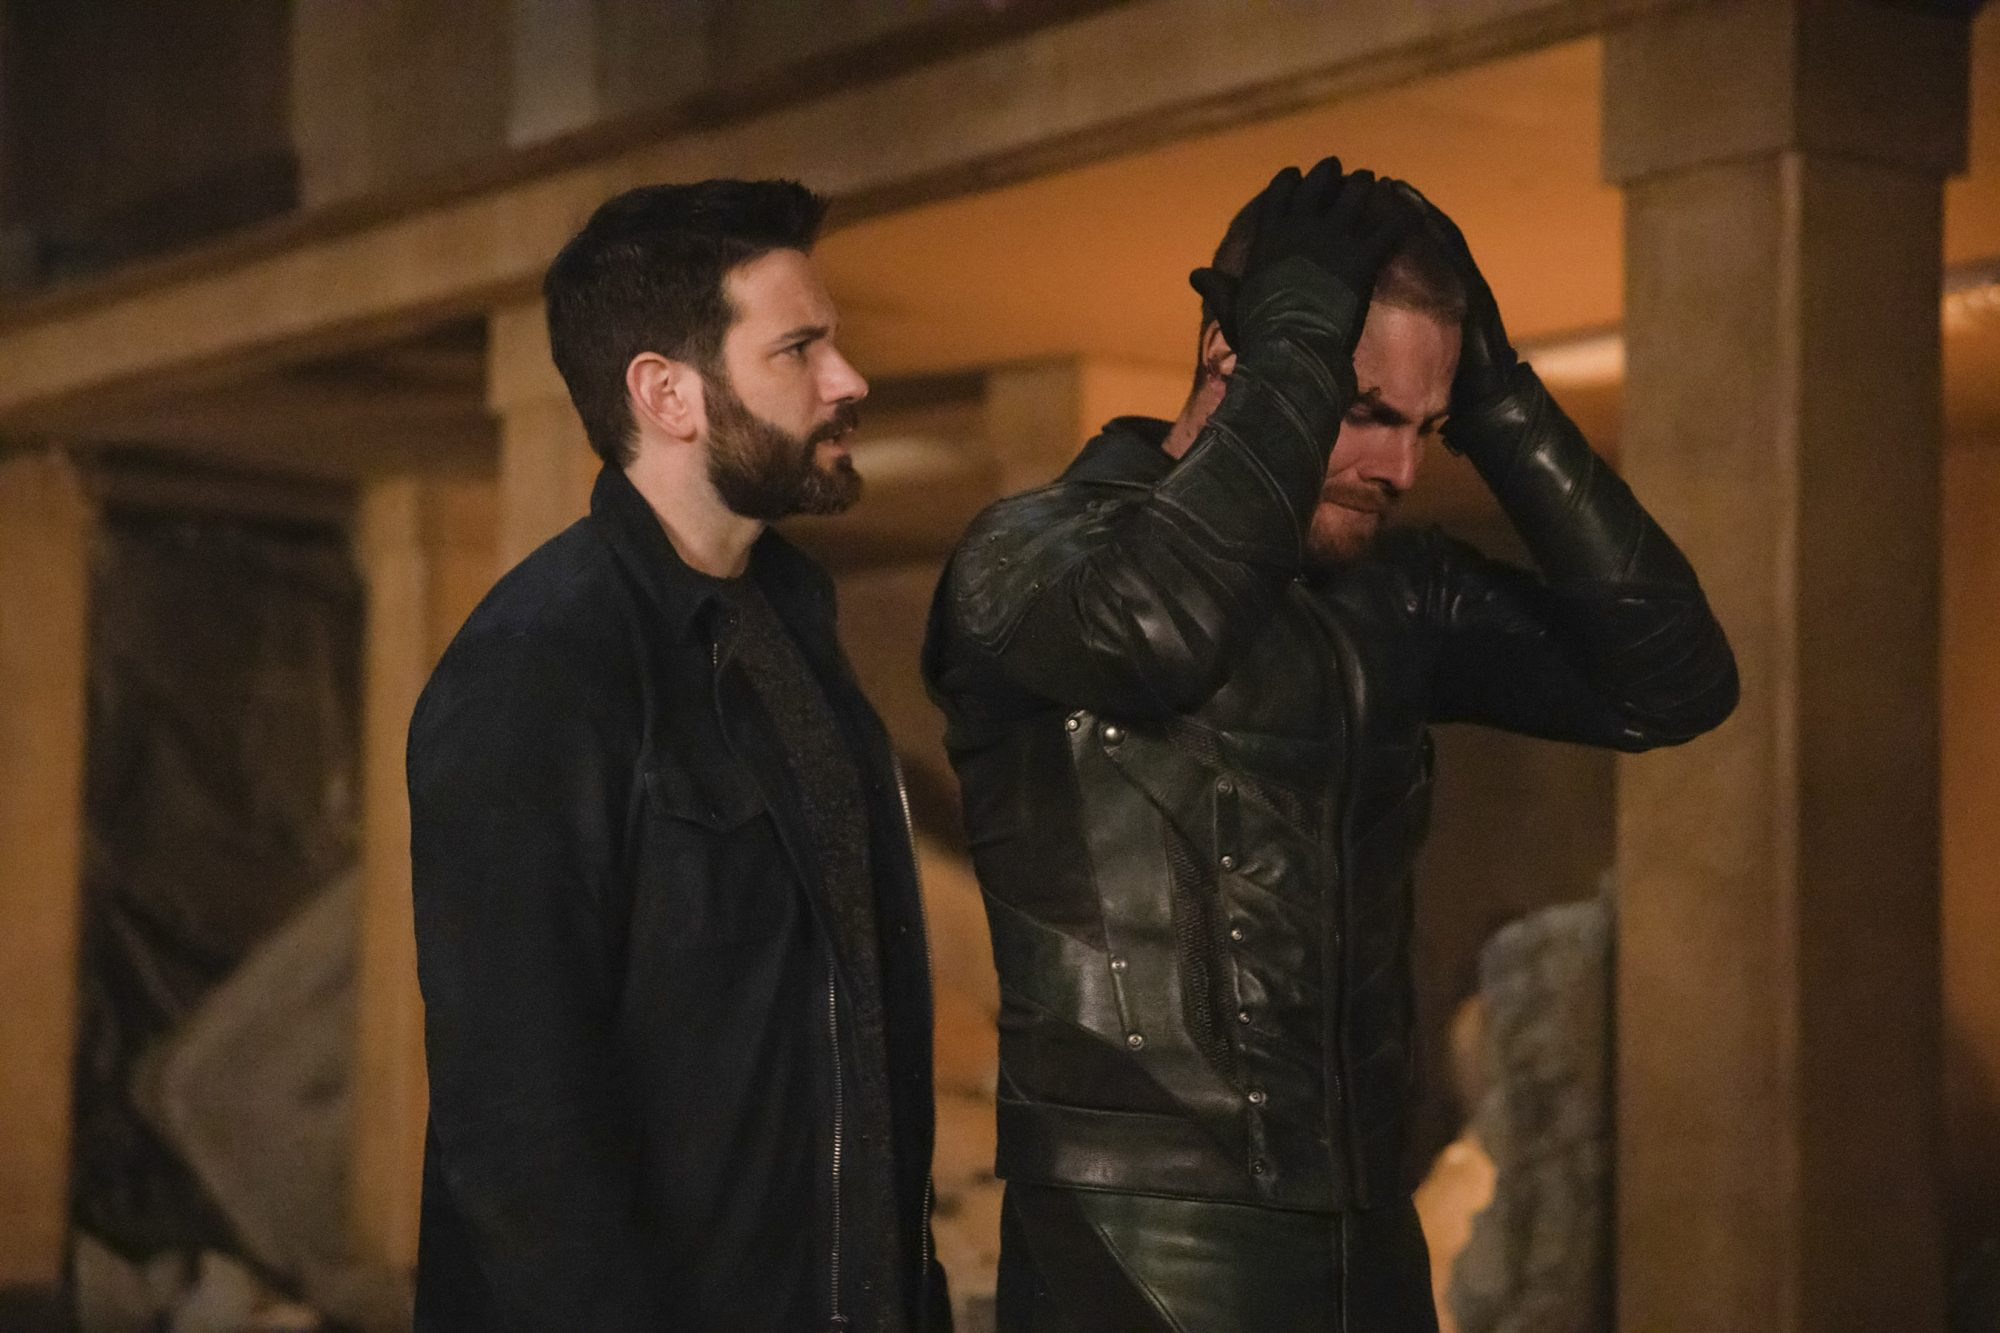 """Arrow -- """"Living Proof"""" -- Image Number: AR721b_0517r.jpg -- Pictured (L-R): Colin Donnell as Tommy Merlyn and Stephen Amell as Oliver Queen/Green Arrow -- Photo: Jack Rowand/The CW -- © 2019 The CW Network, LLC. All Rights Reserved."""